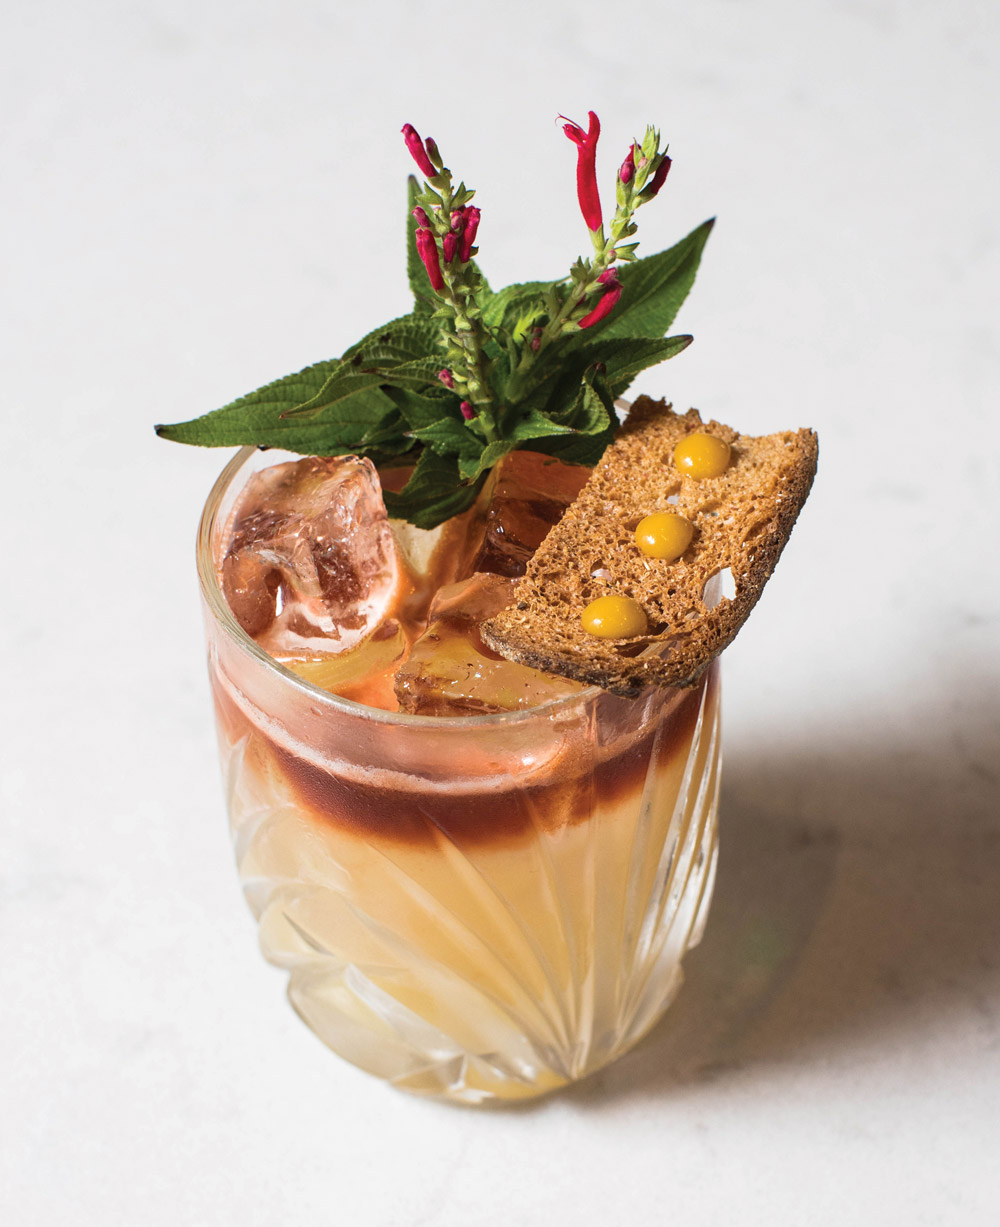 The Tropical Grains cocktail